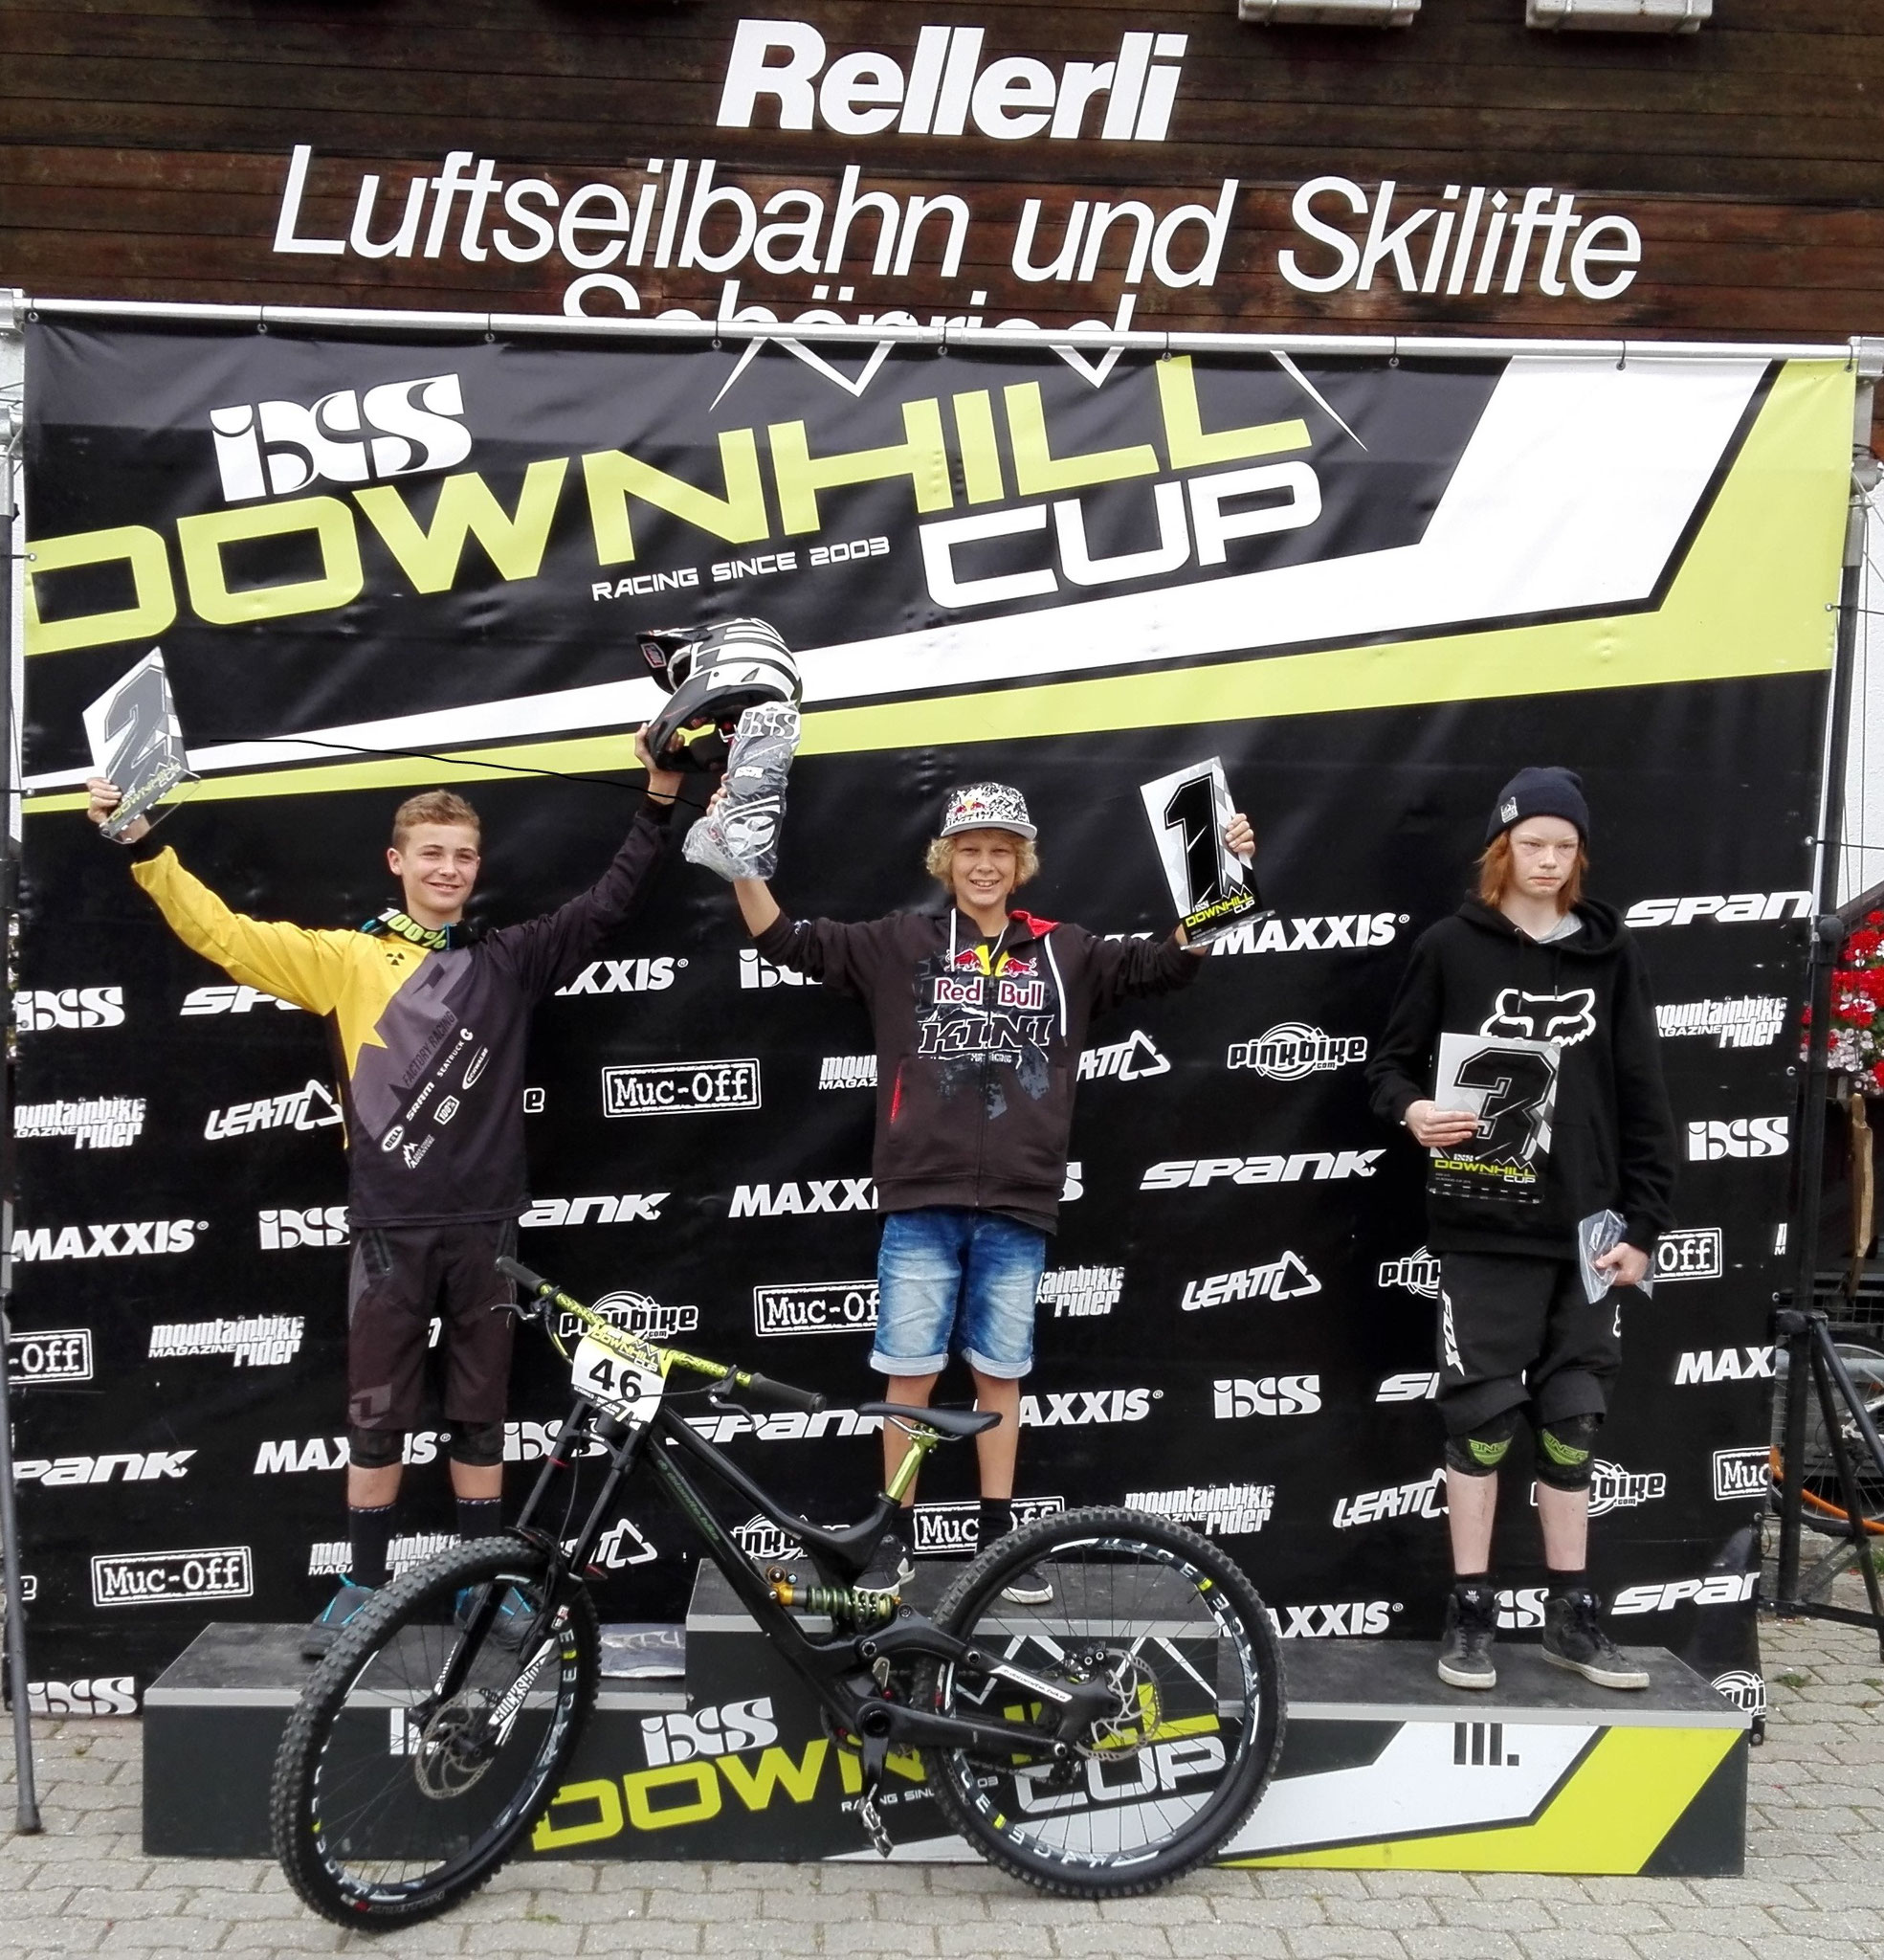 1. Platz in der IXS Rookie Downhill U 15 Jahreswertung 2016